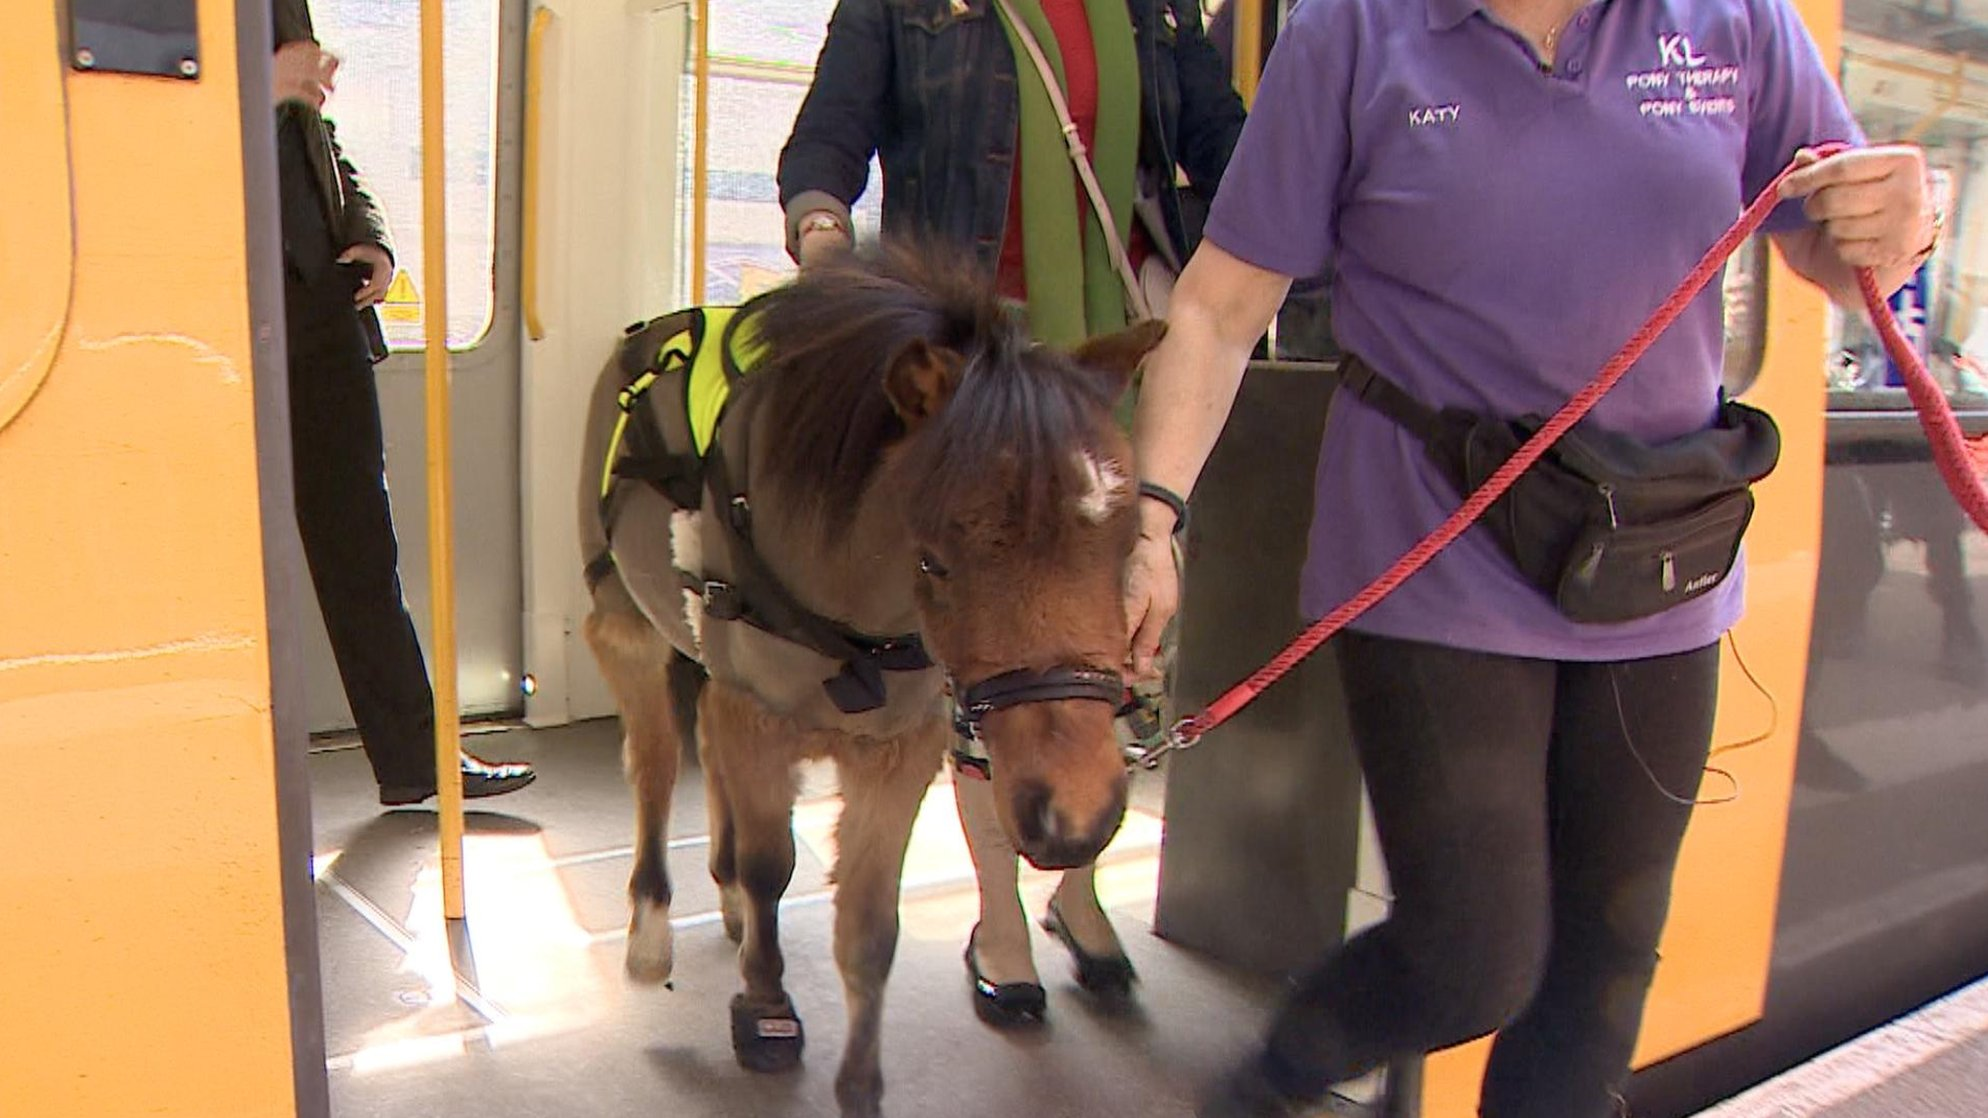 A guide horse's day out on Tyne & Wear Metro training